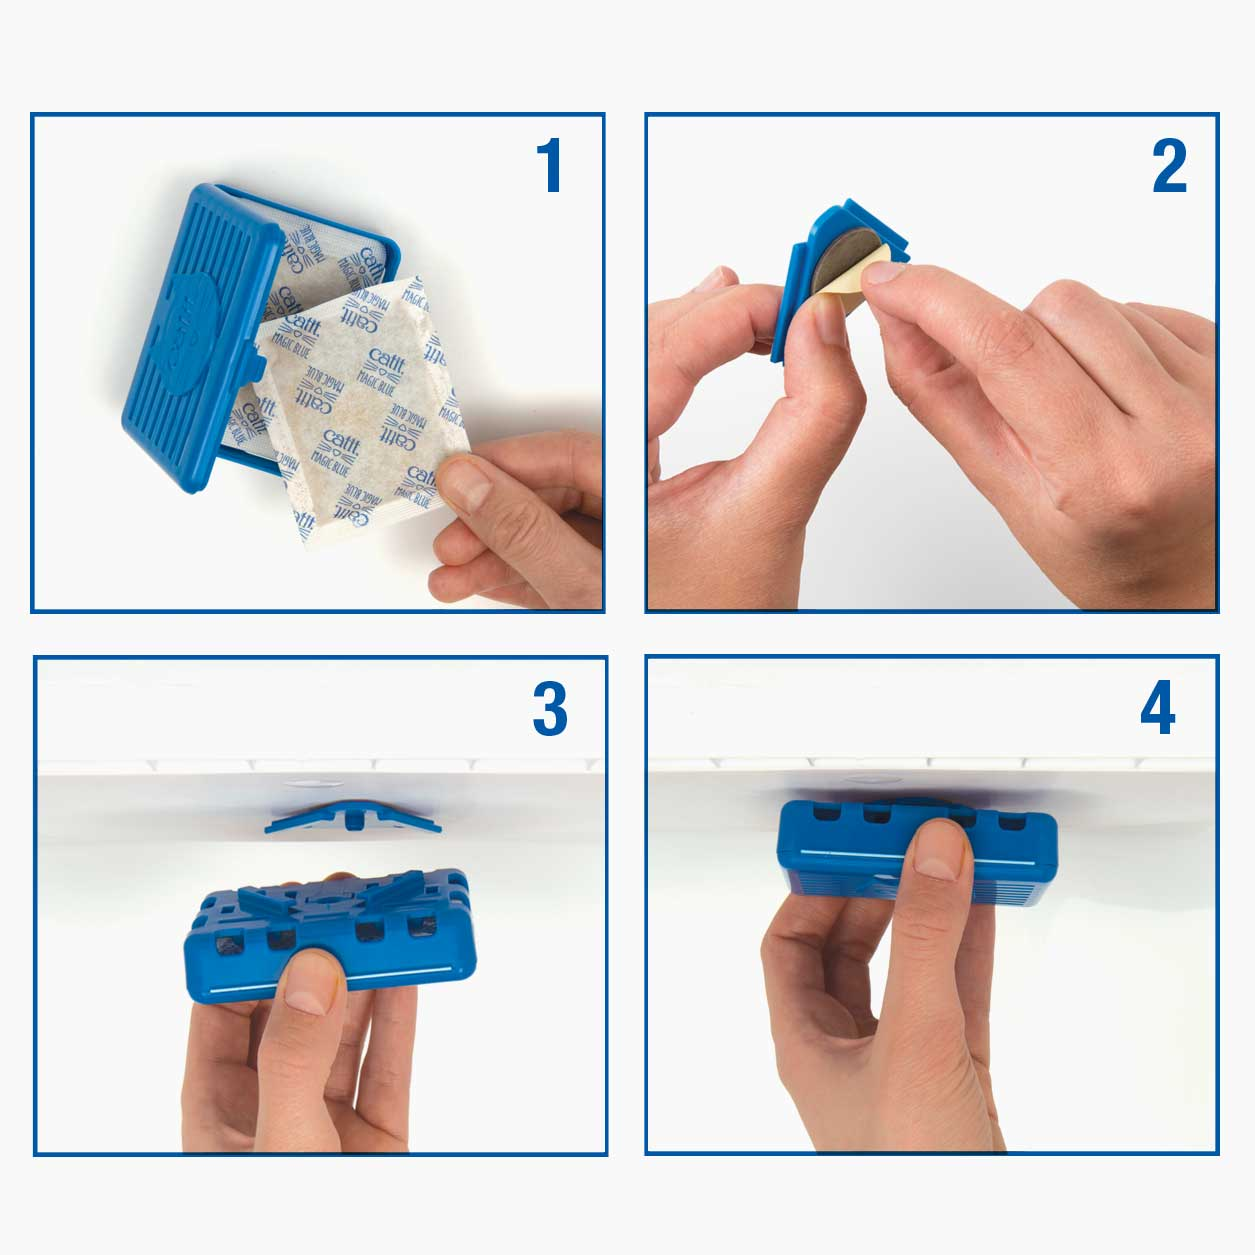 Steps to refilling Magic Blue Cartridge